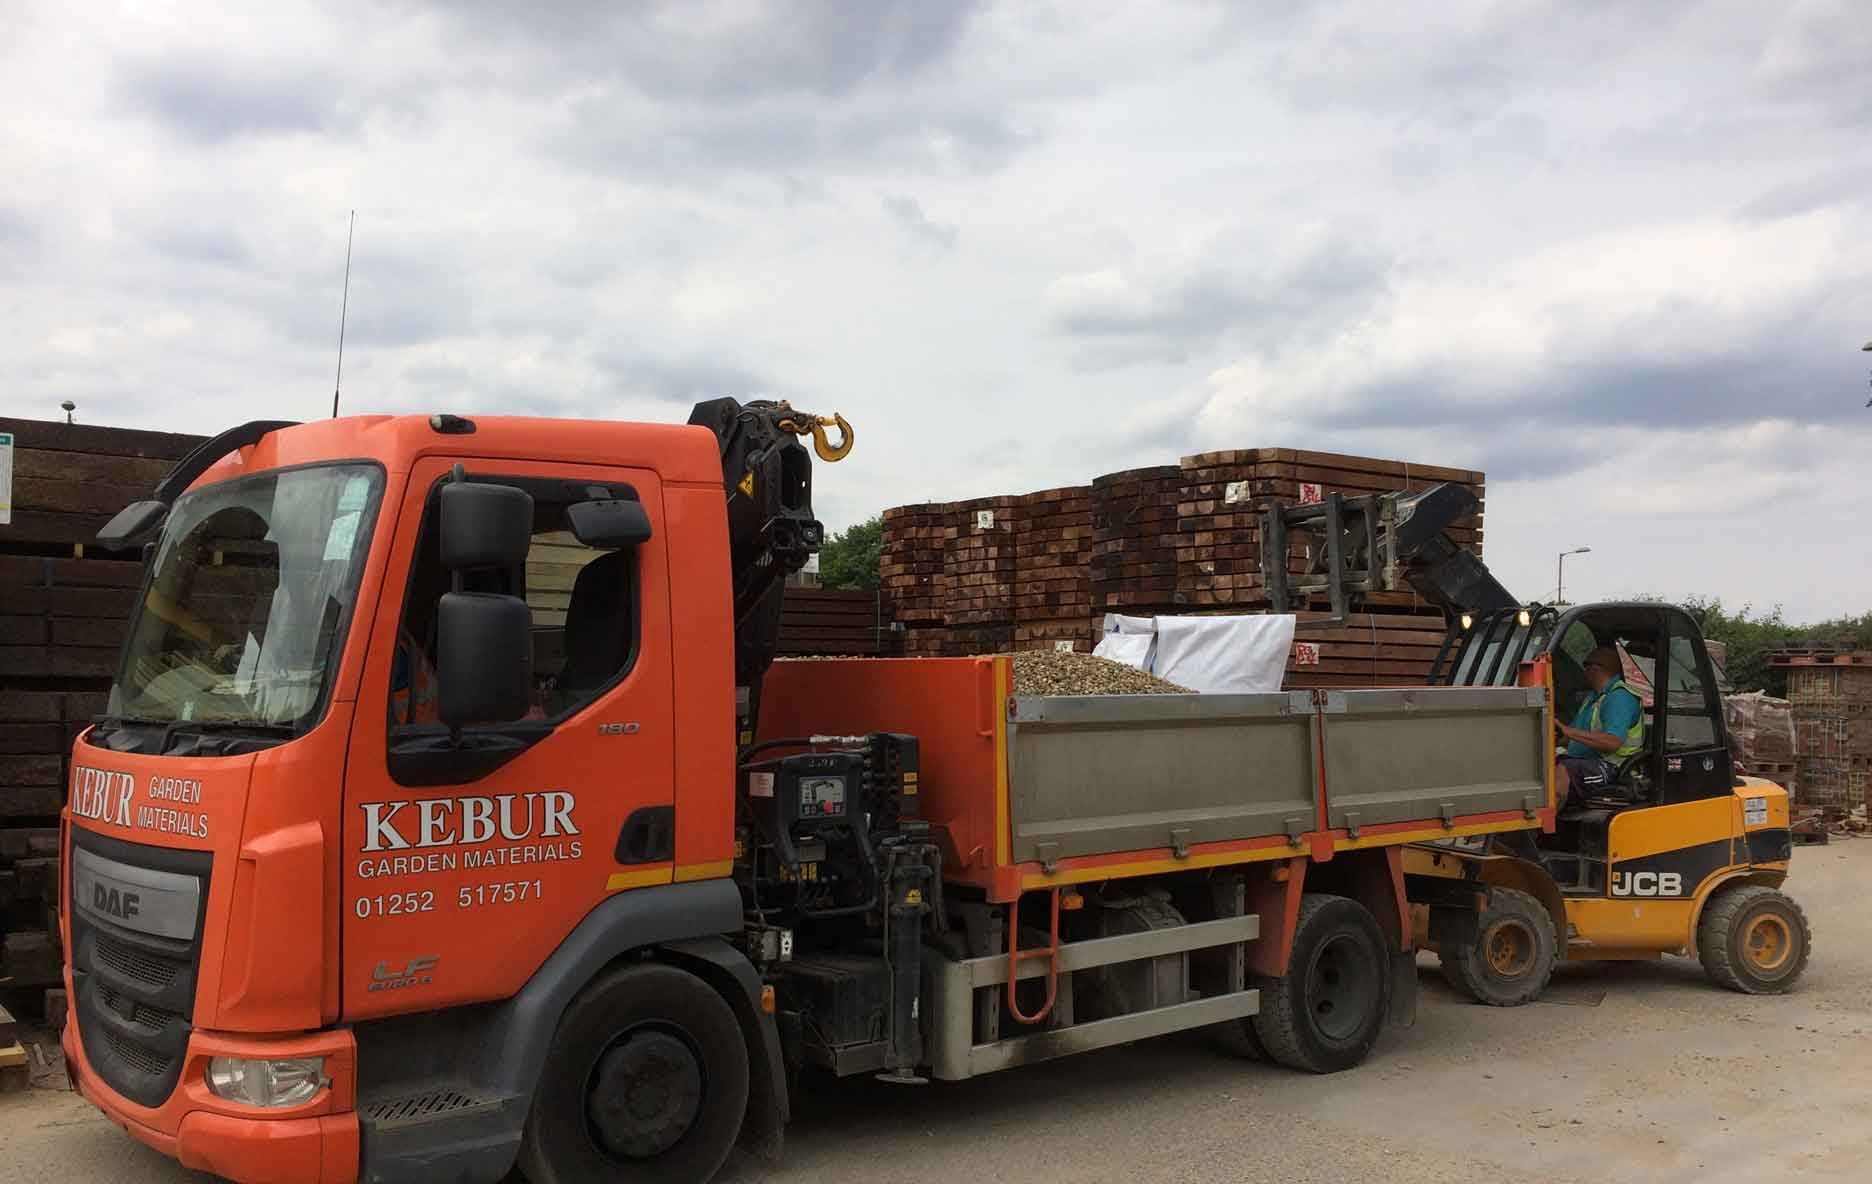 Kebur delivery lorry